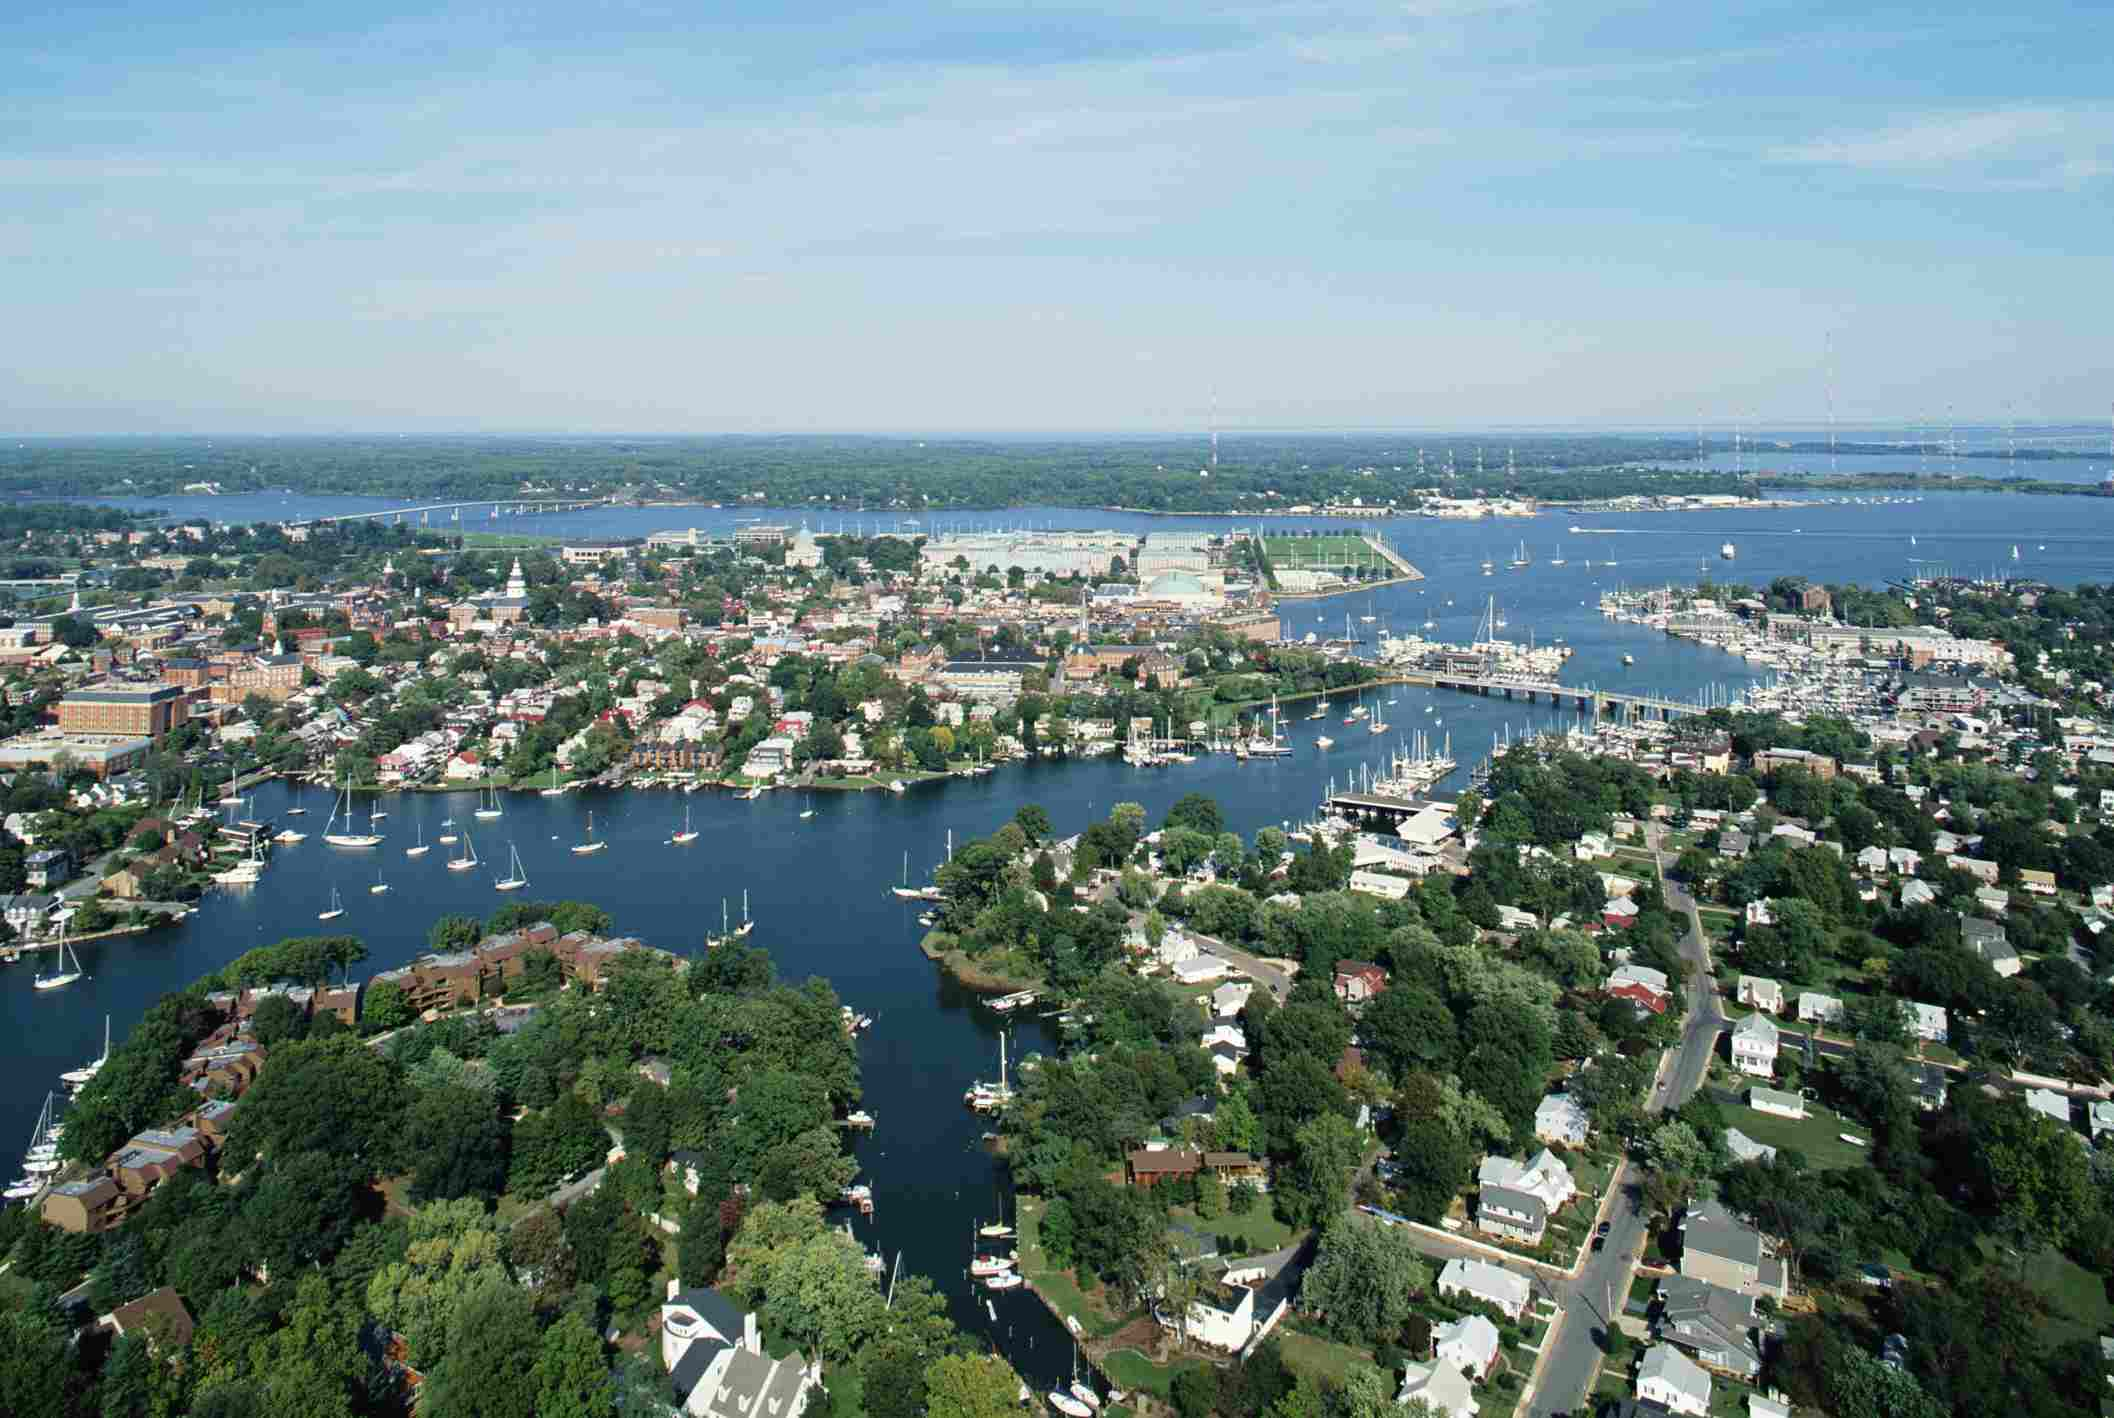 Annapolis, MD Aerial View